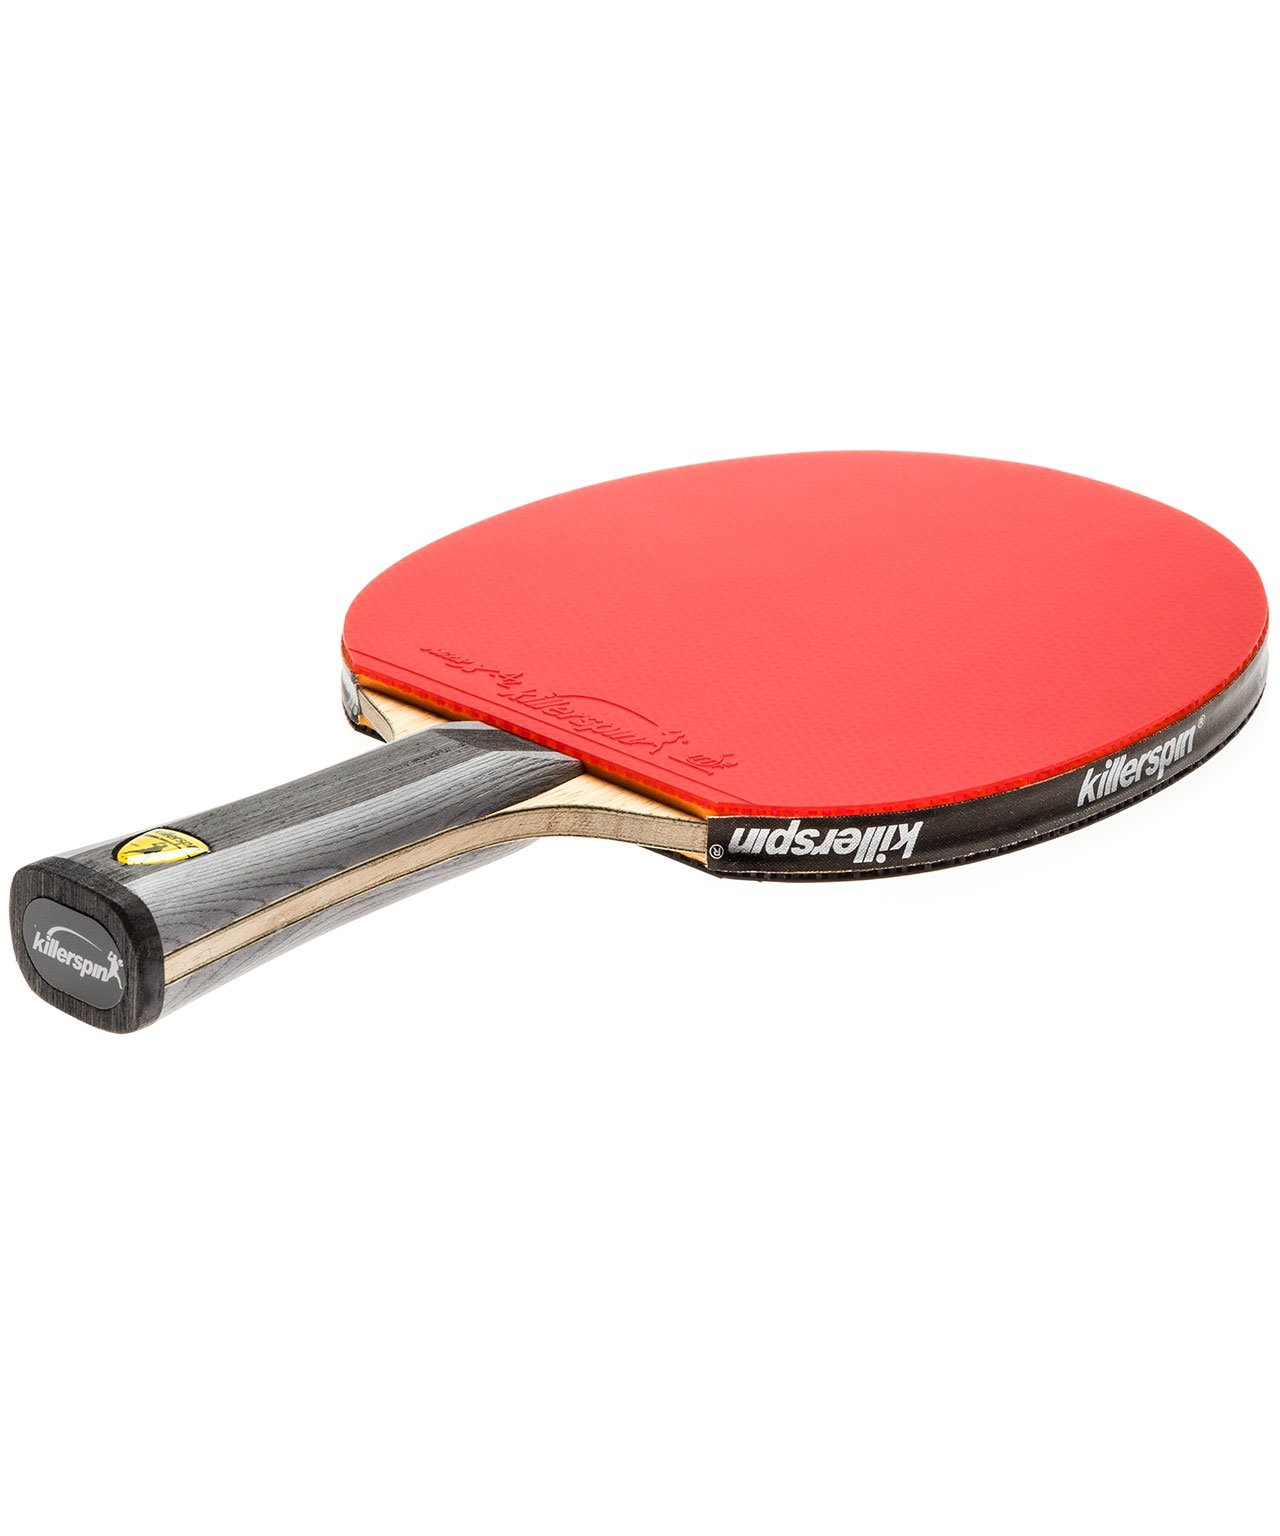 eaec444e3489 Diamond TC Ping Pong Paddle